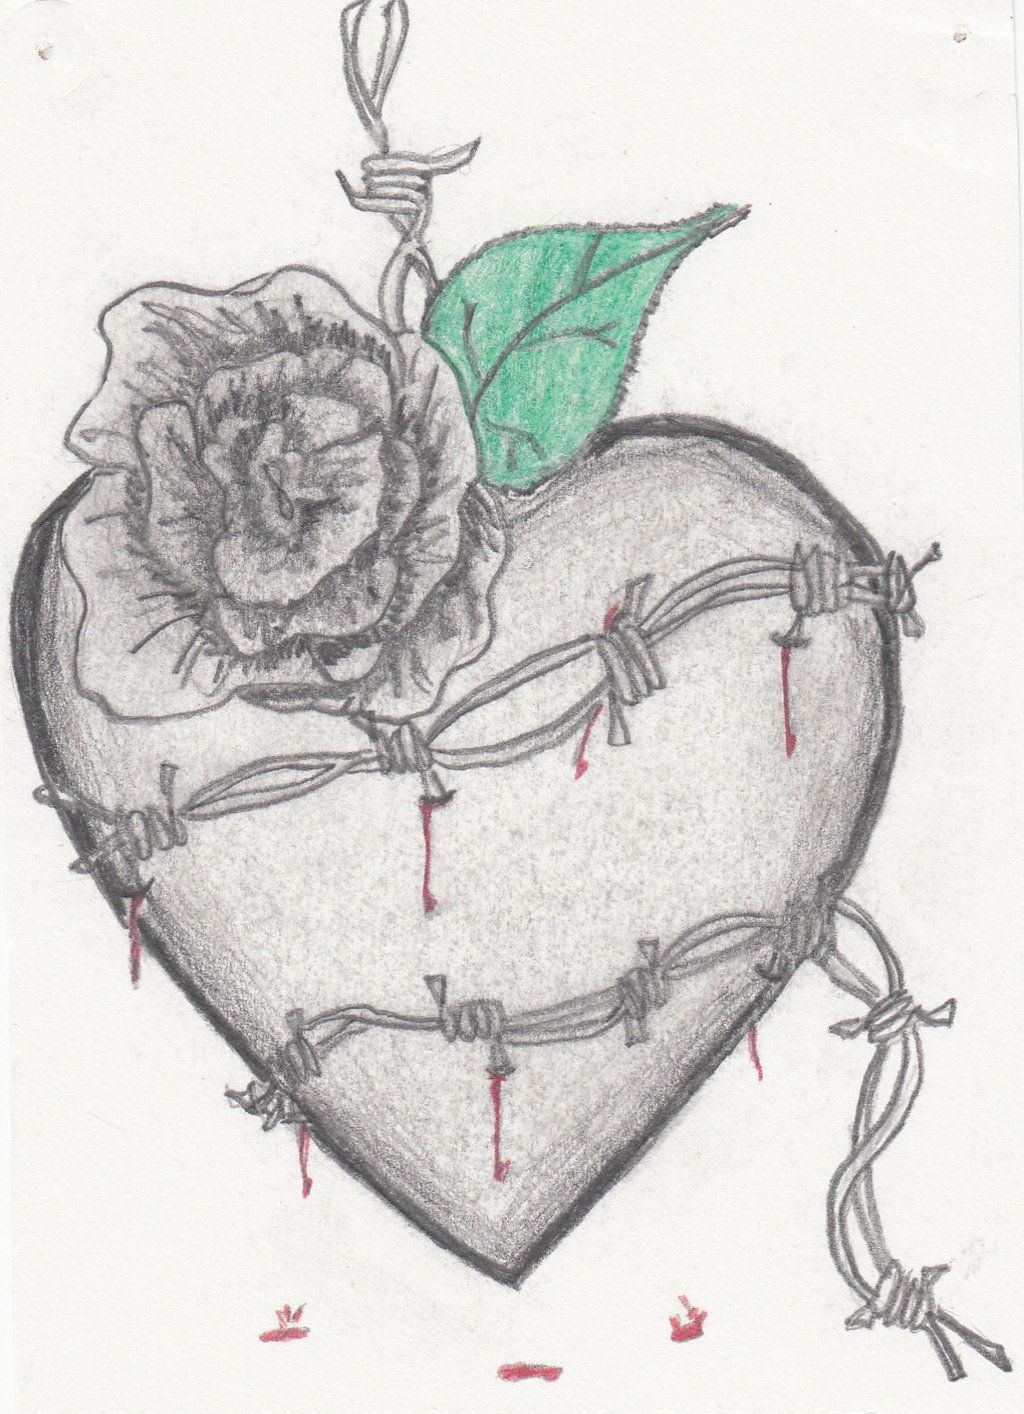 Barbed wire heart by ShShipping15.deviantart.com on @deviantART ...